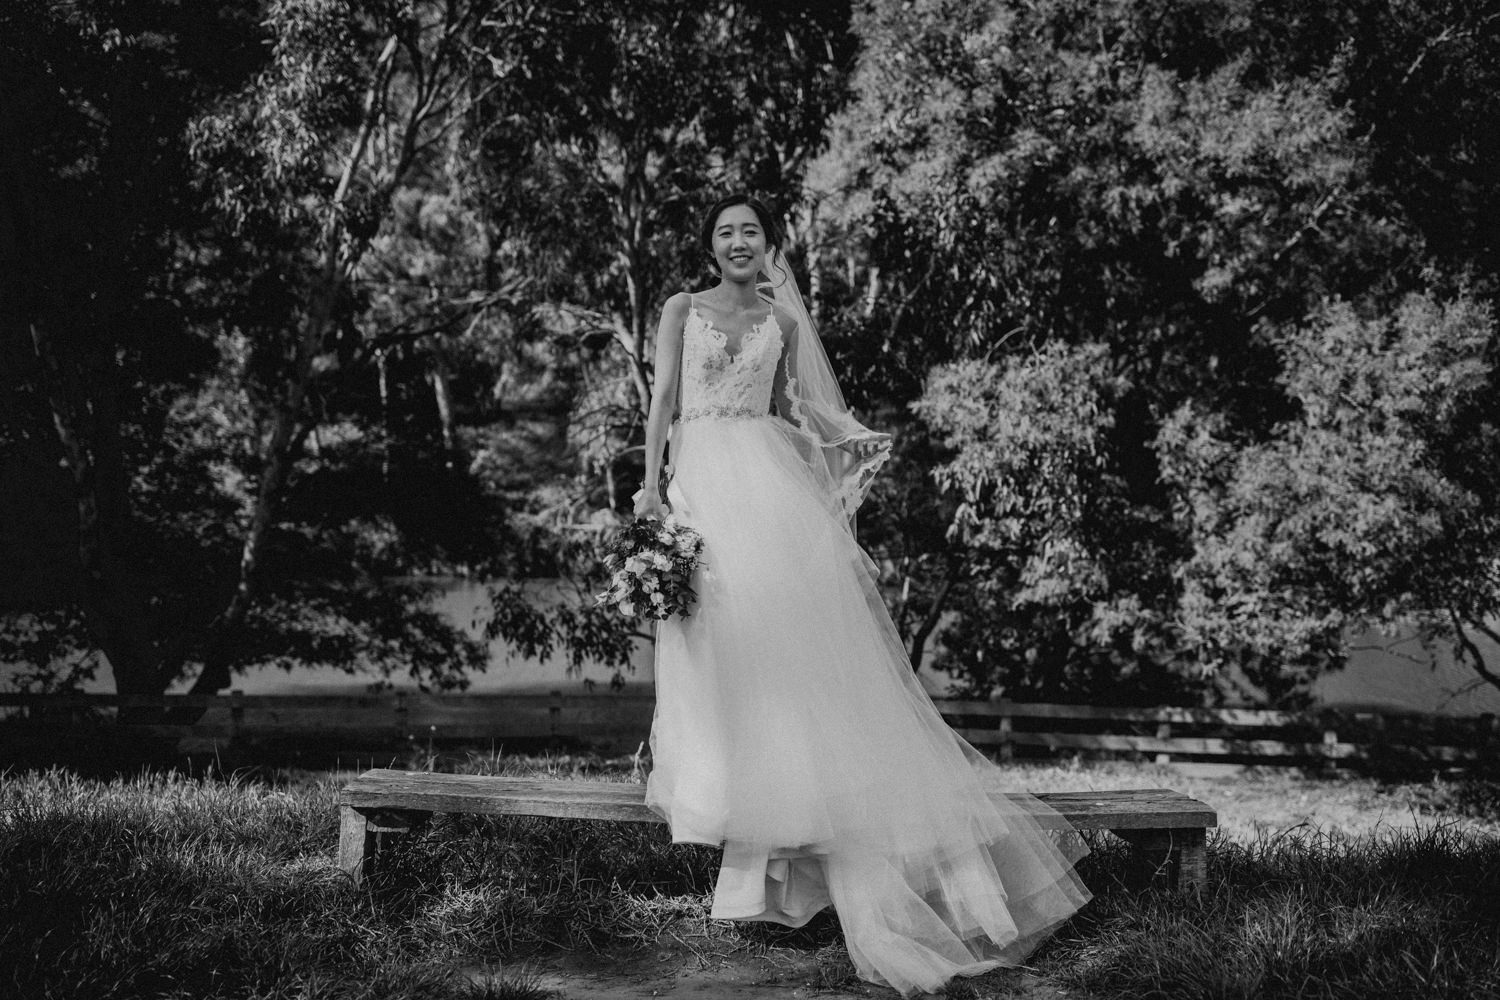 Melbourne_Wedding_Collingwood_Childrens_Farm_Anna_Taylor_072.jpg